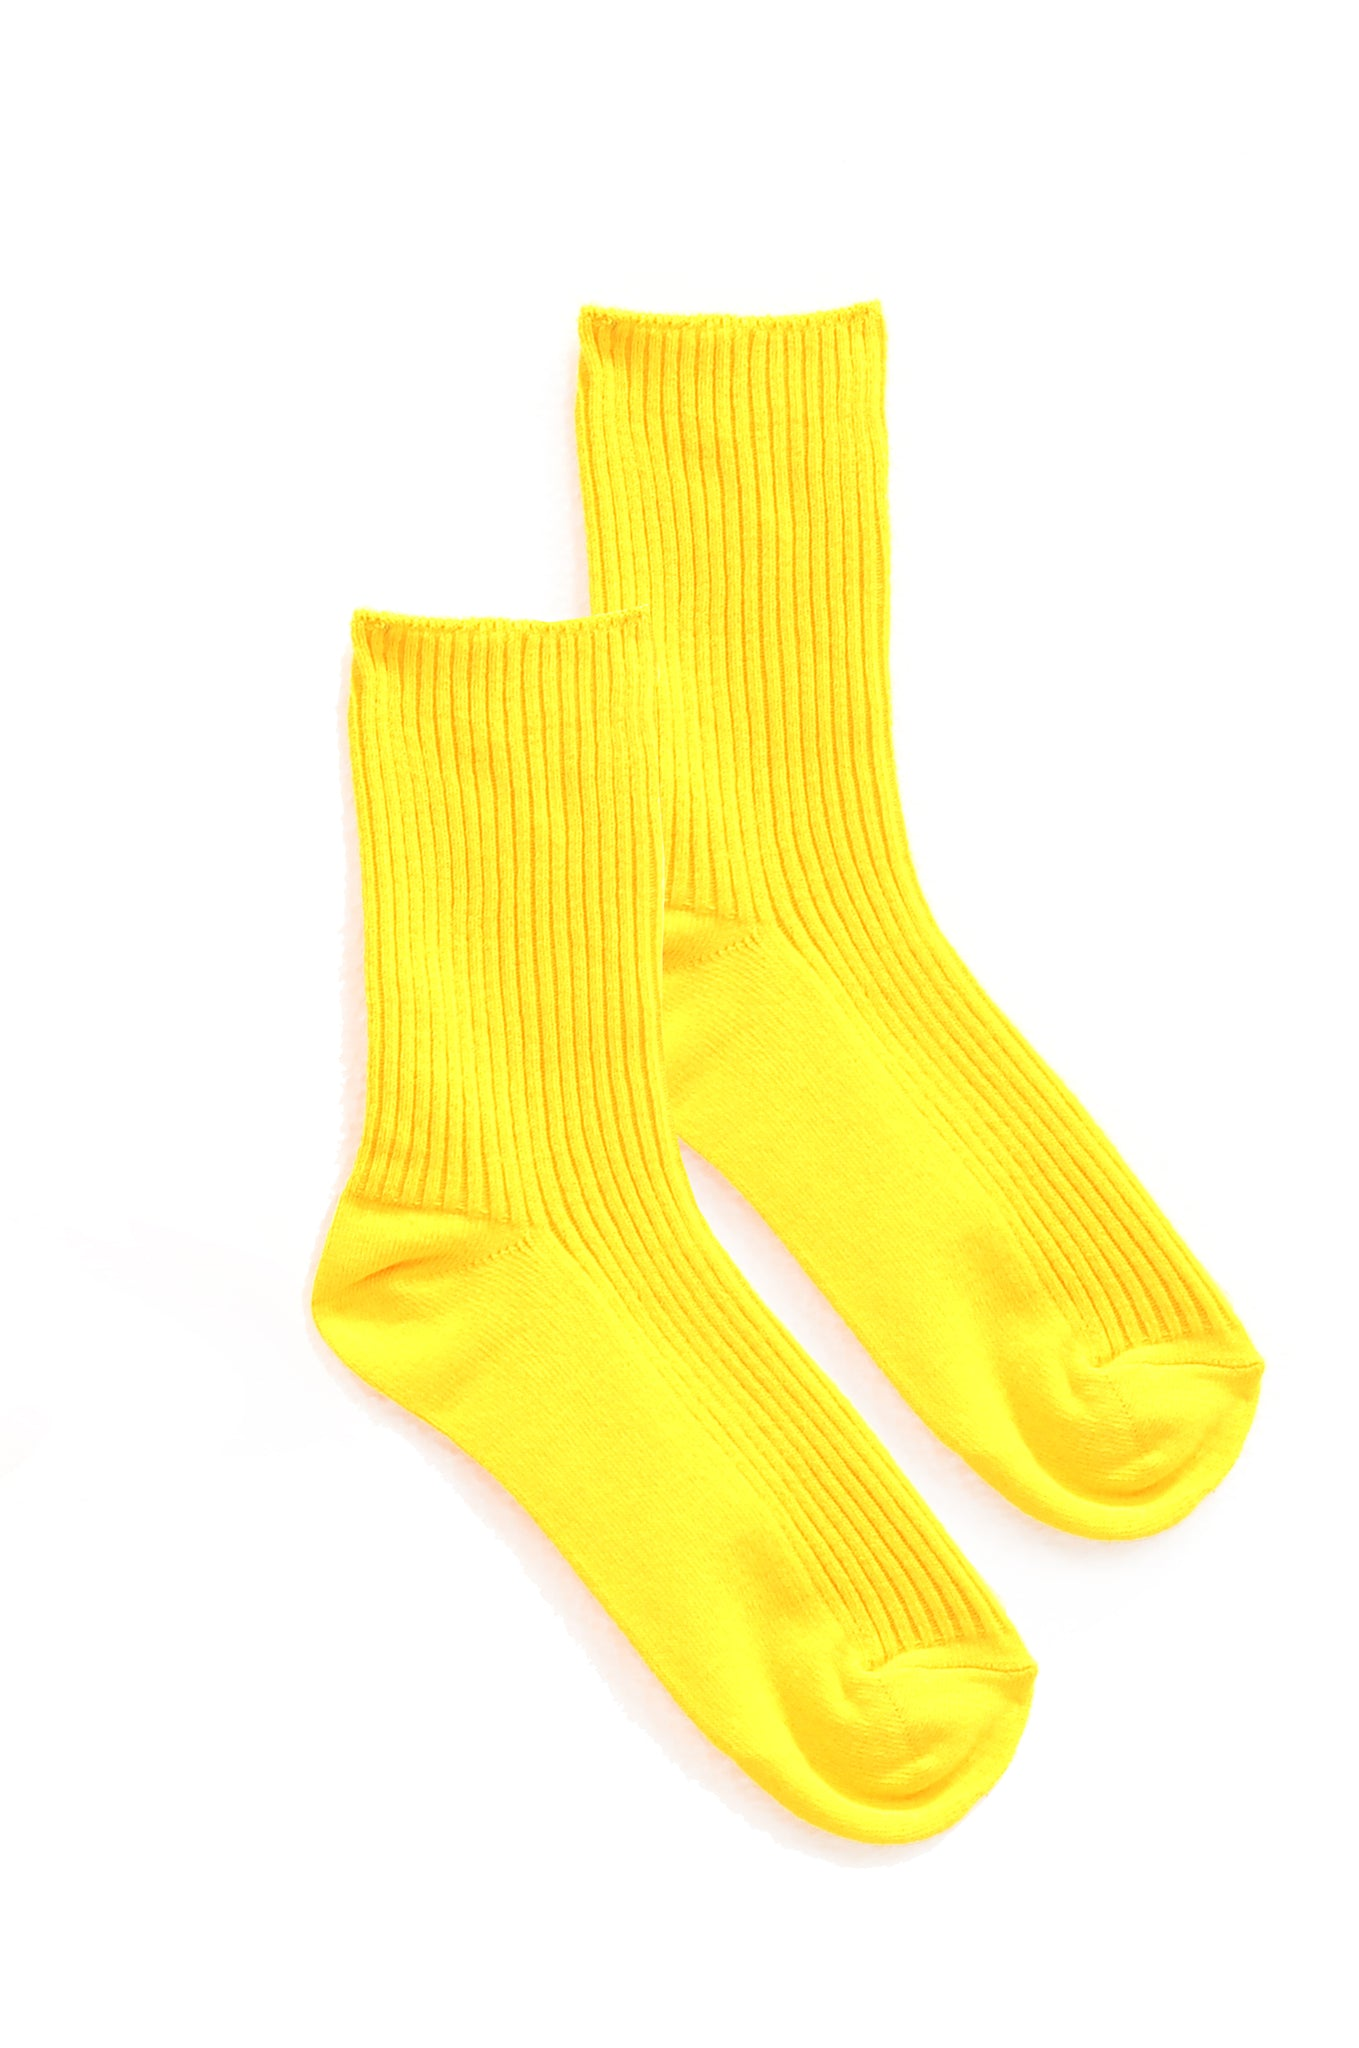 Vivid Yellow Socks